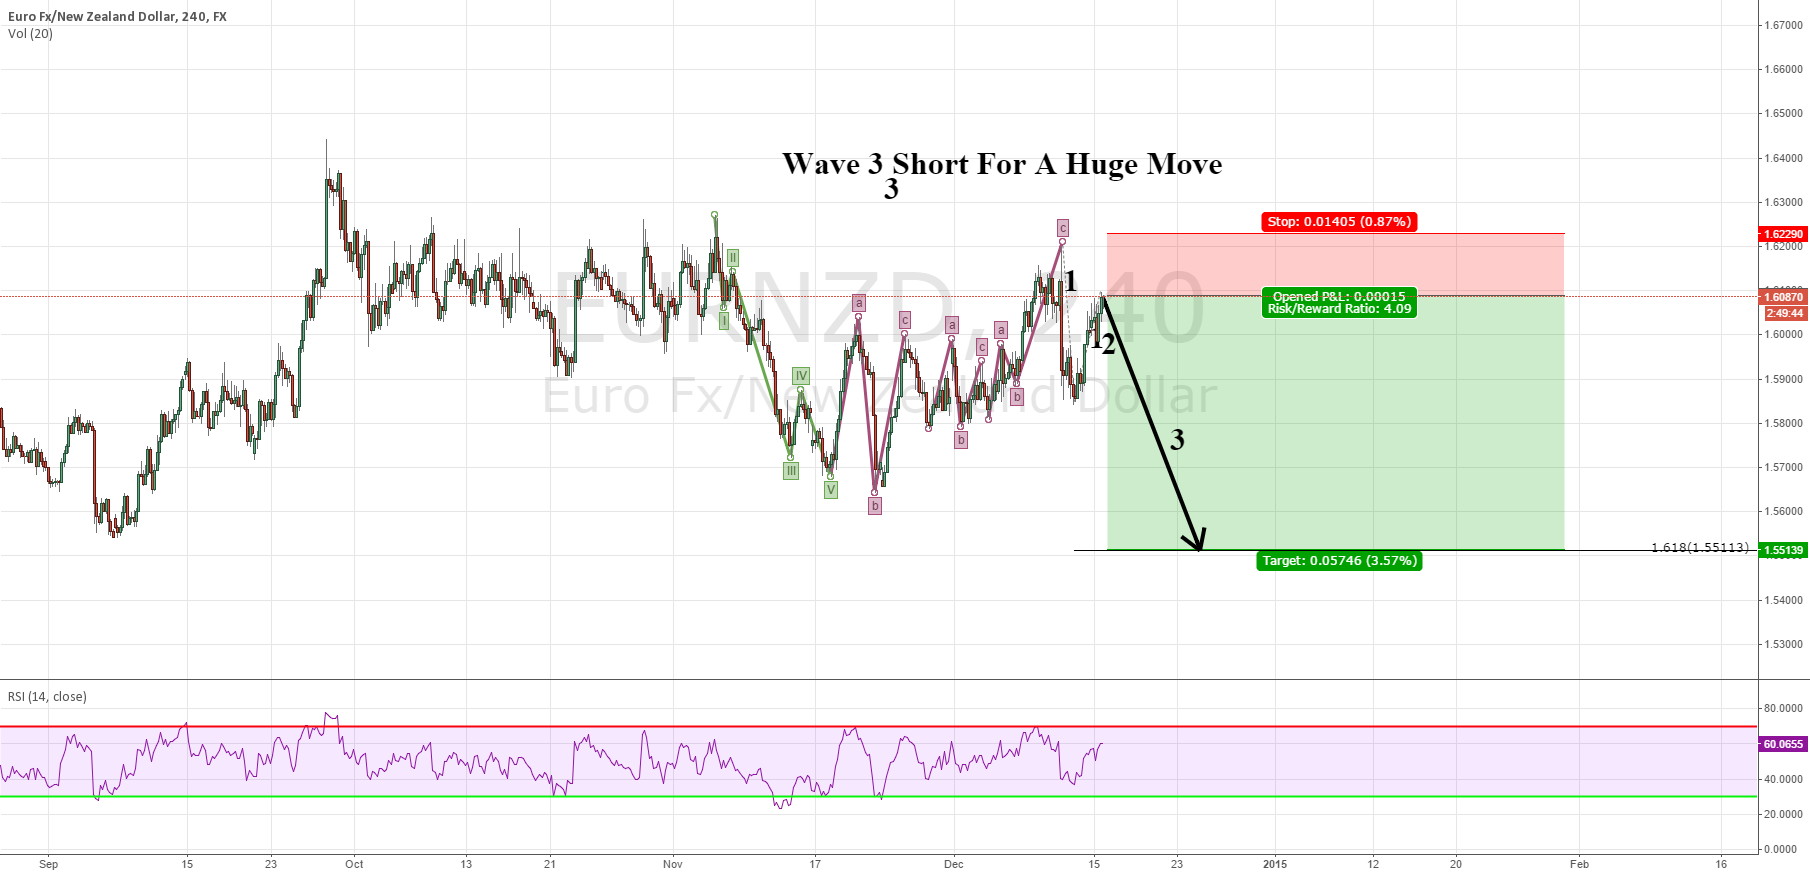 Wave 3 Short For A Huge Move